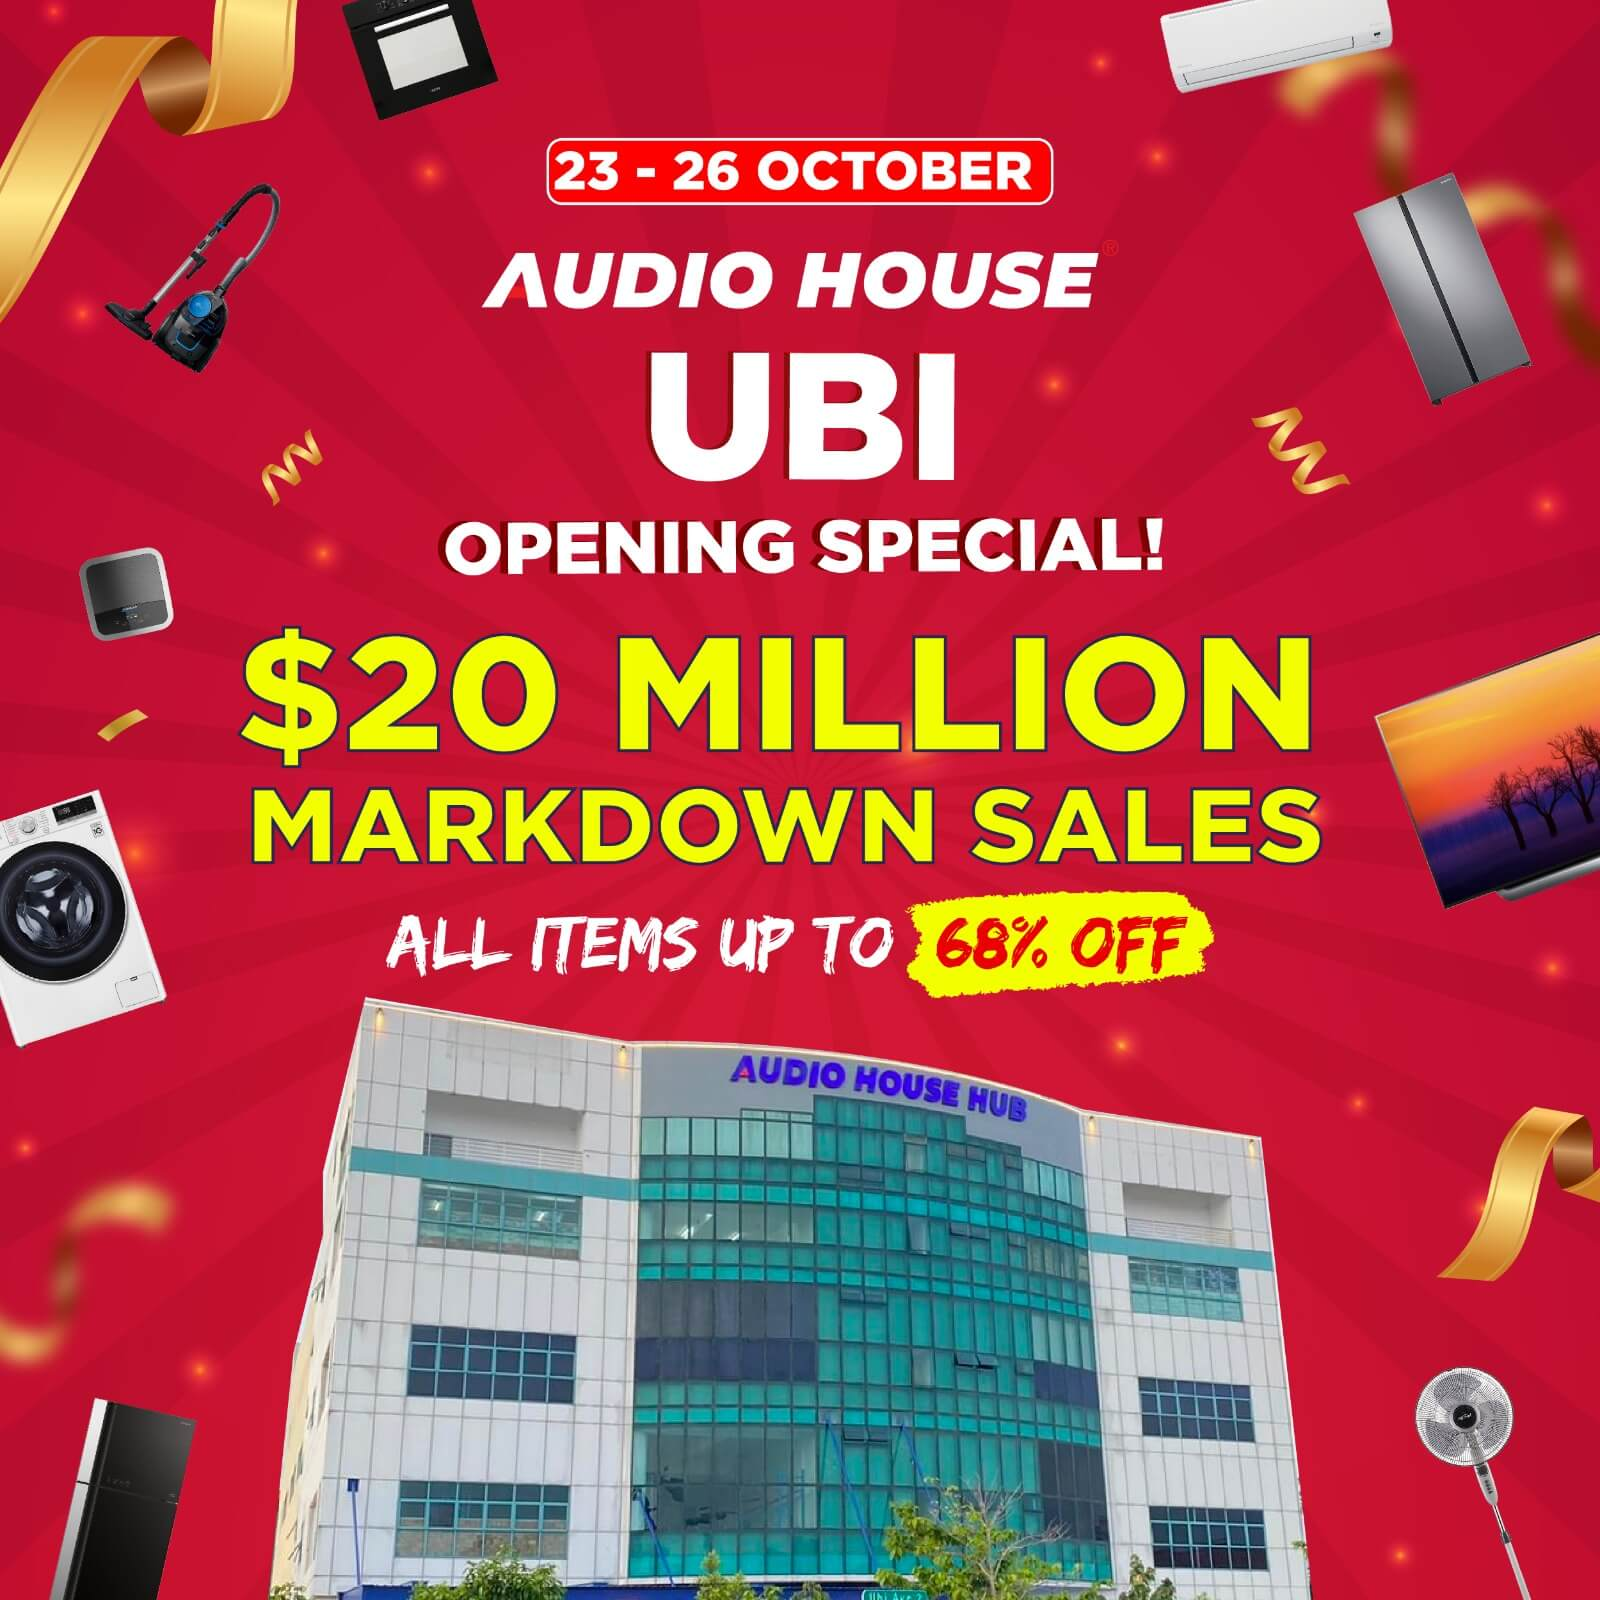 23 Oct   26 Oct: Audio House Opening Special All Items Up To 68% Off!